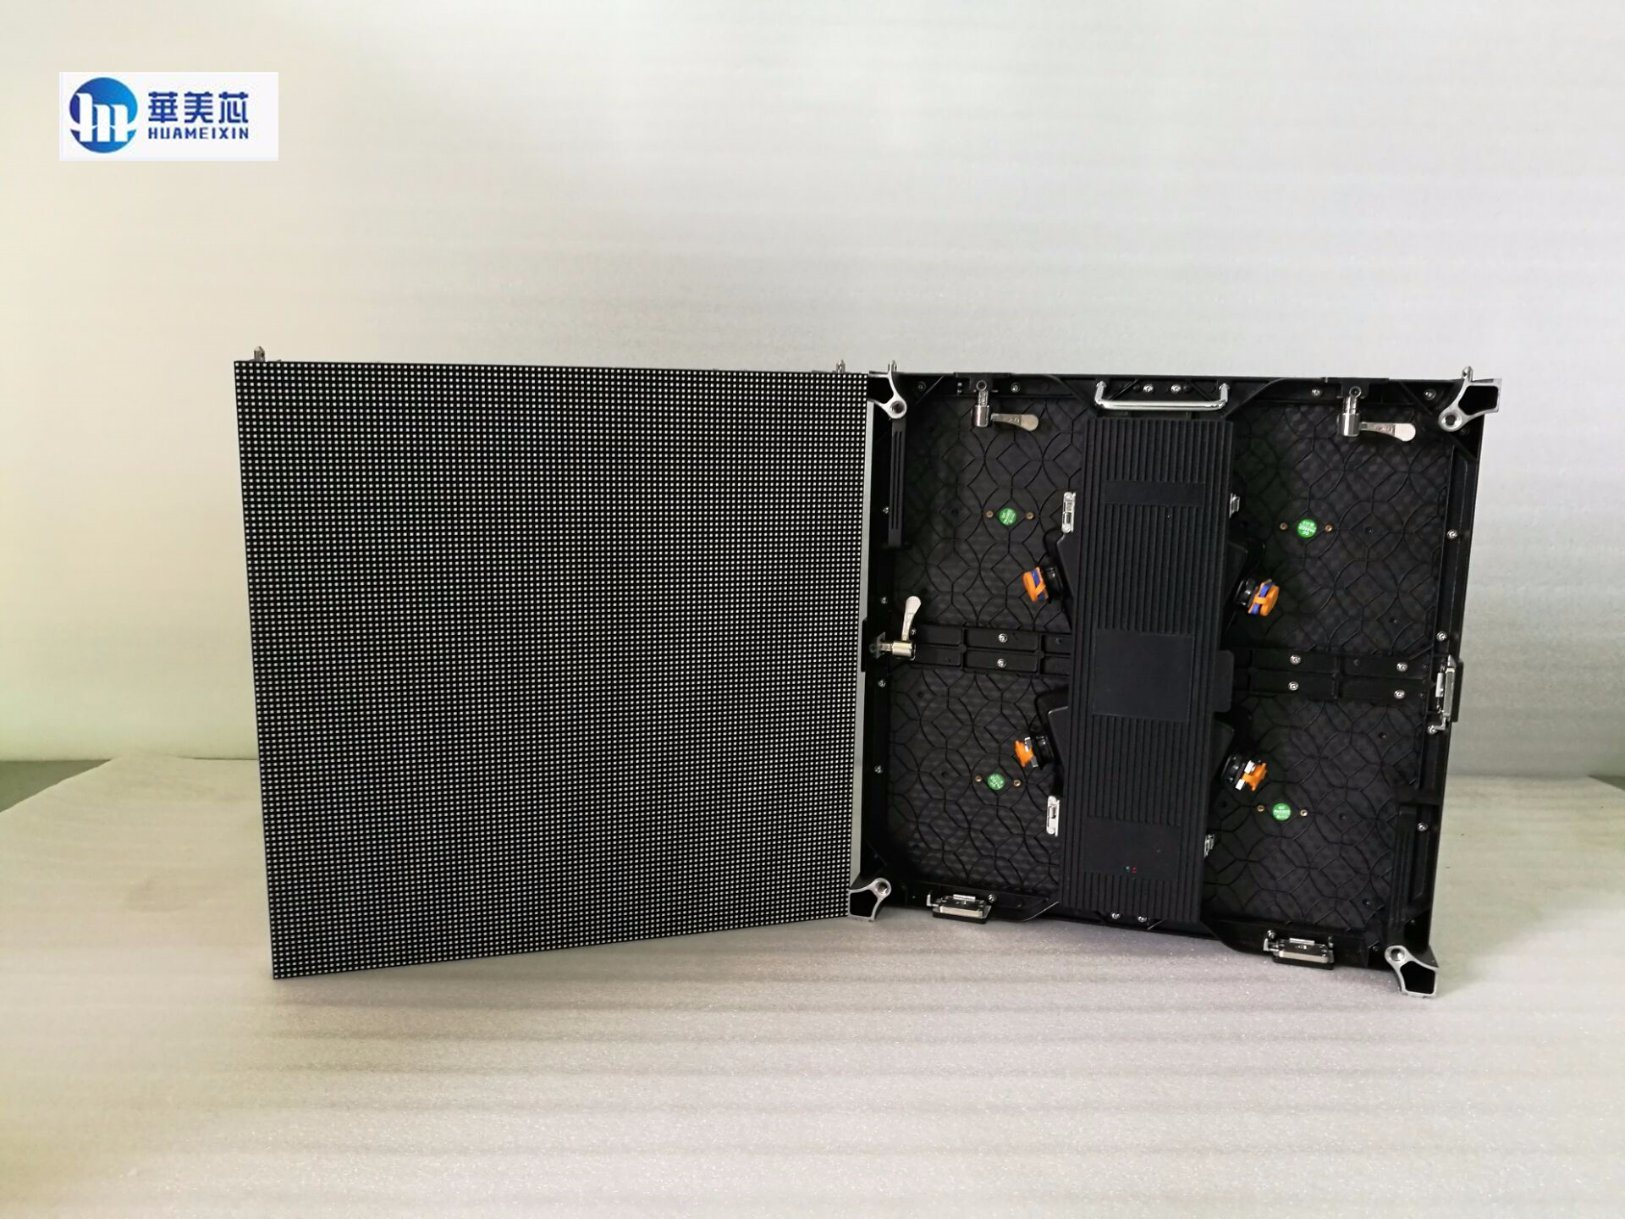 Indoor/Outdoor 500*500mm/500mm*1000mm P4.81 LED Display Screen for Rental Advertising Die Cast Aluminum Cabinet LED Video Wall P3.91/P5.95